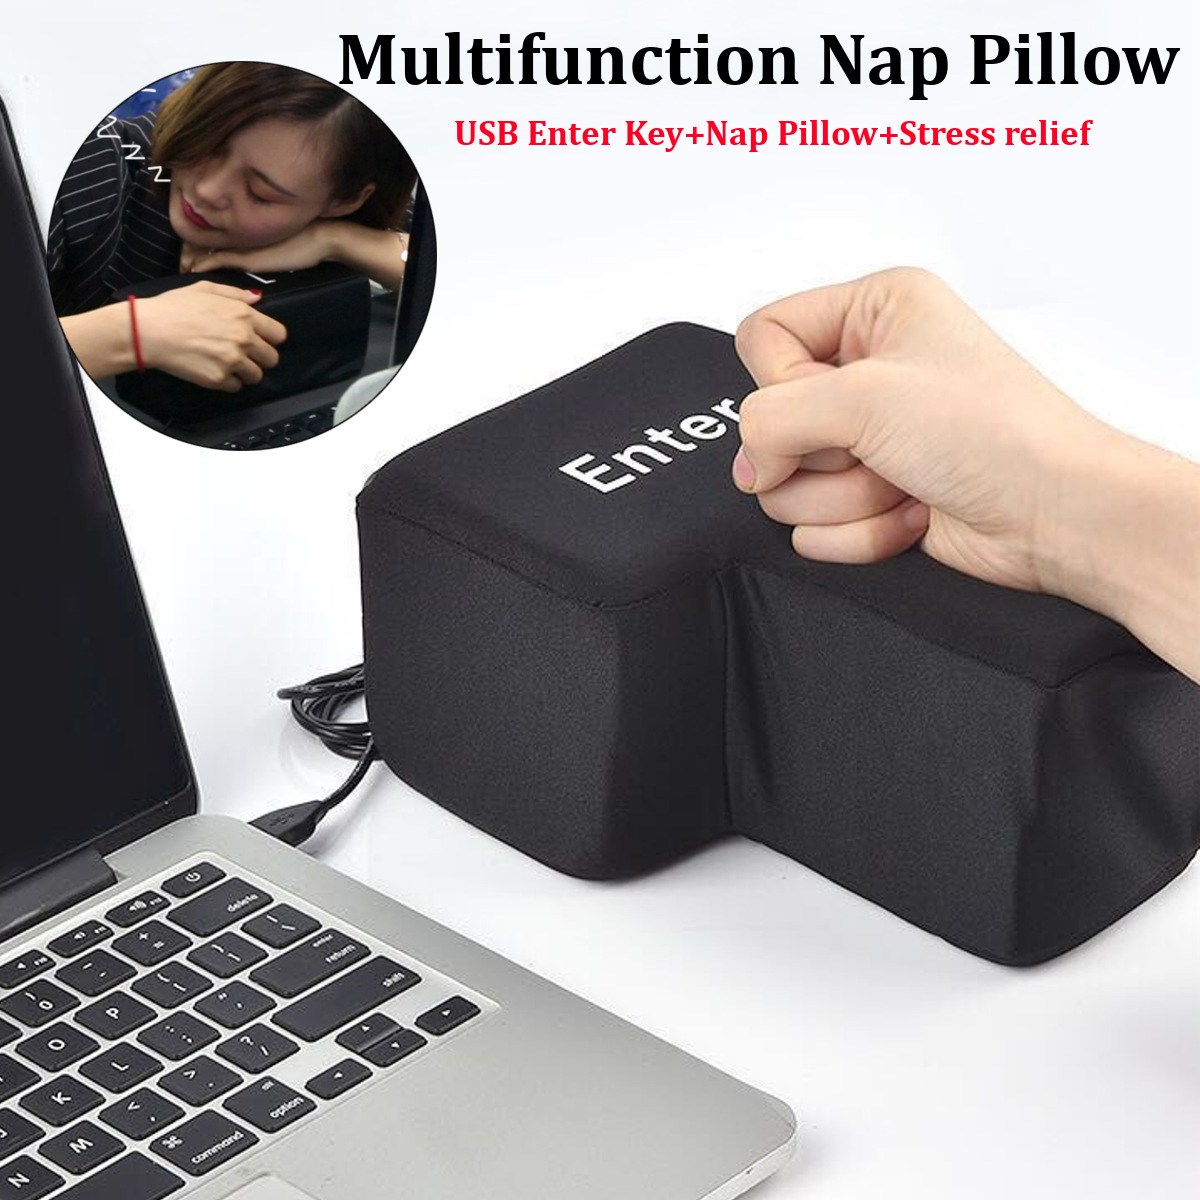 USB Enter Key Vent Pillow Soft Computer Button Return Key Offices Decompression Supersized Pillow Stress Relief Toy 140x200 Mm